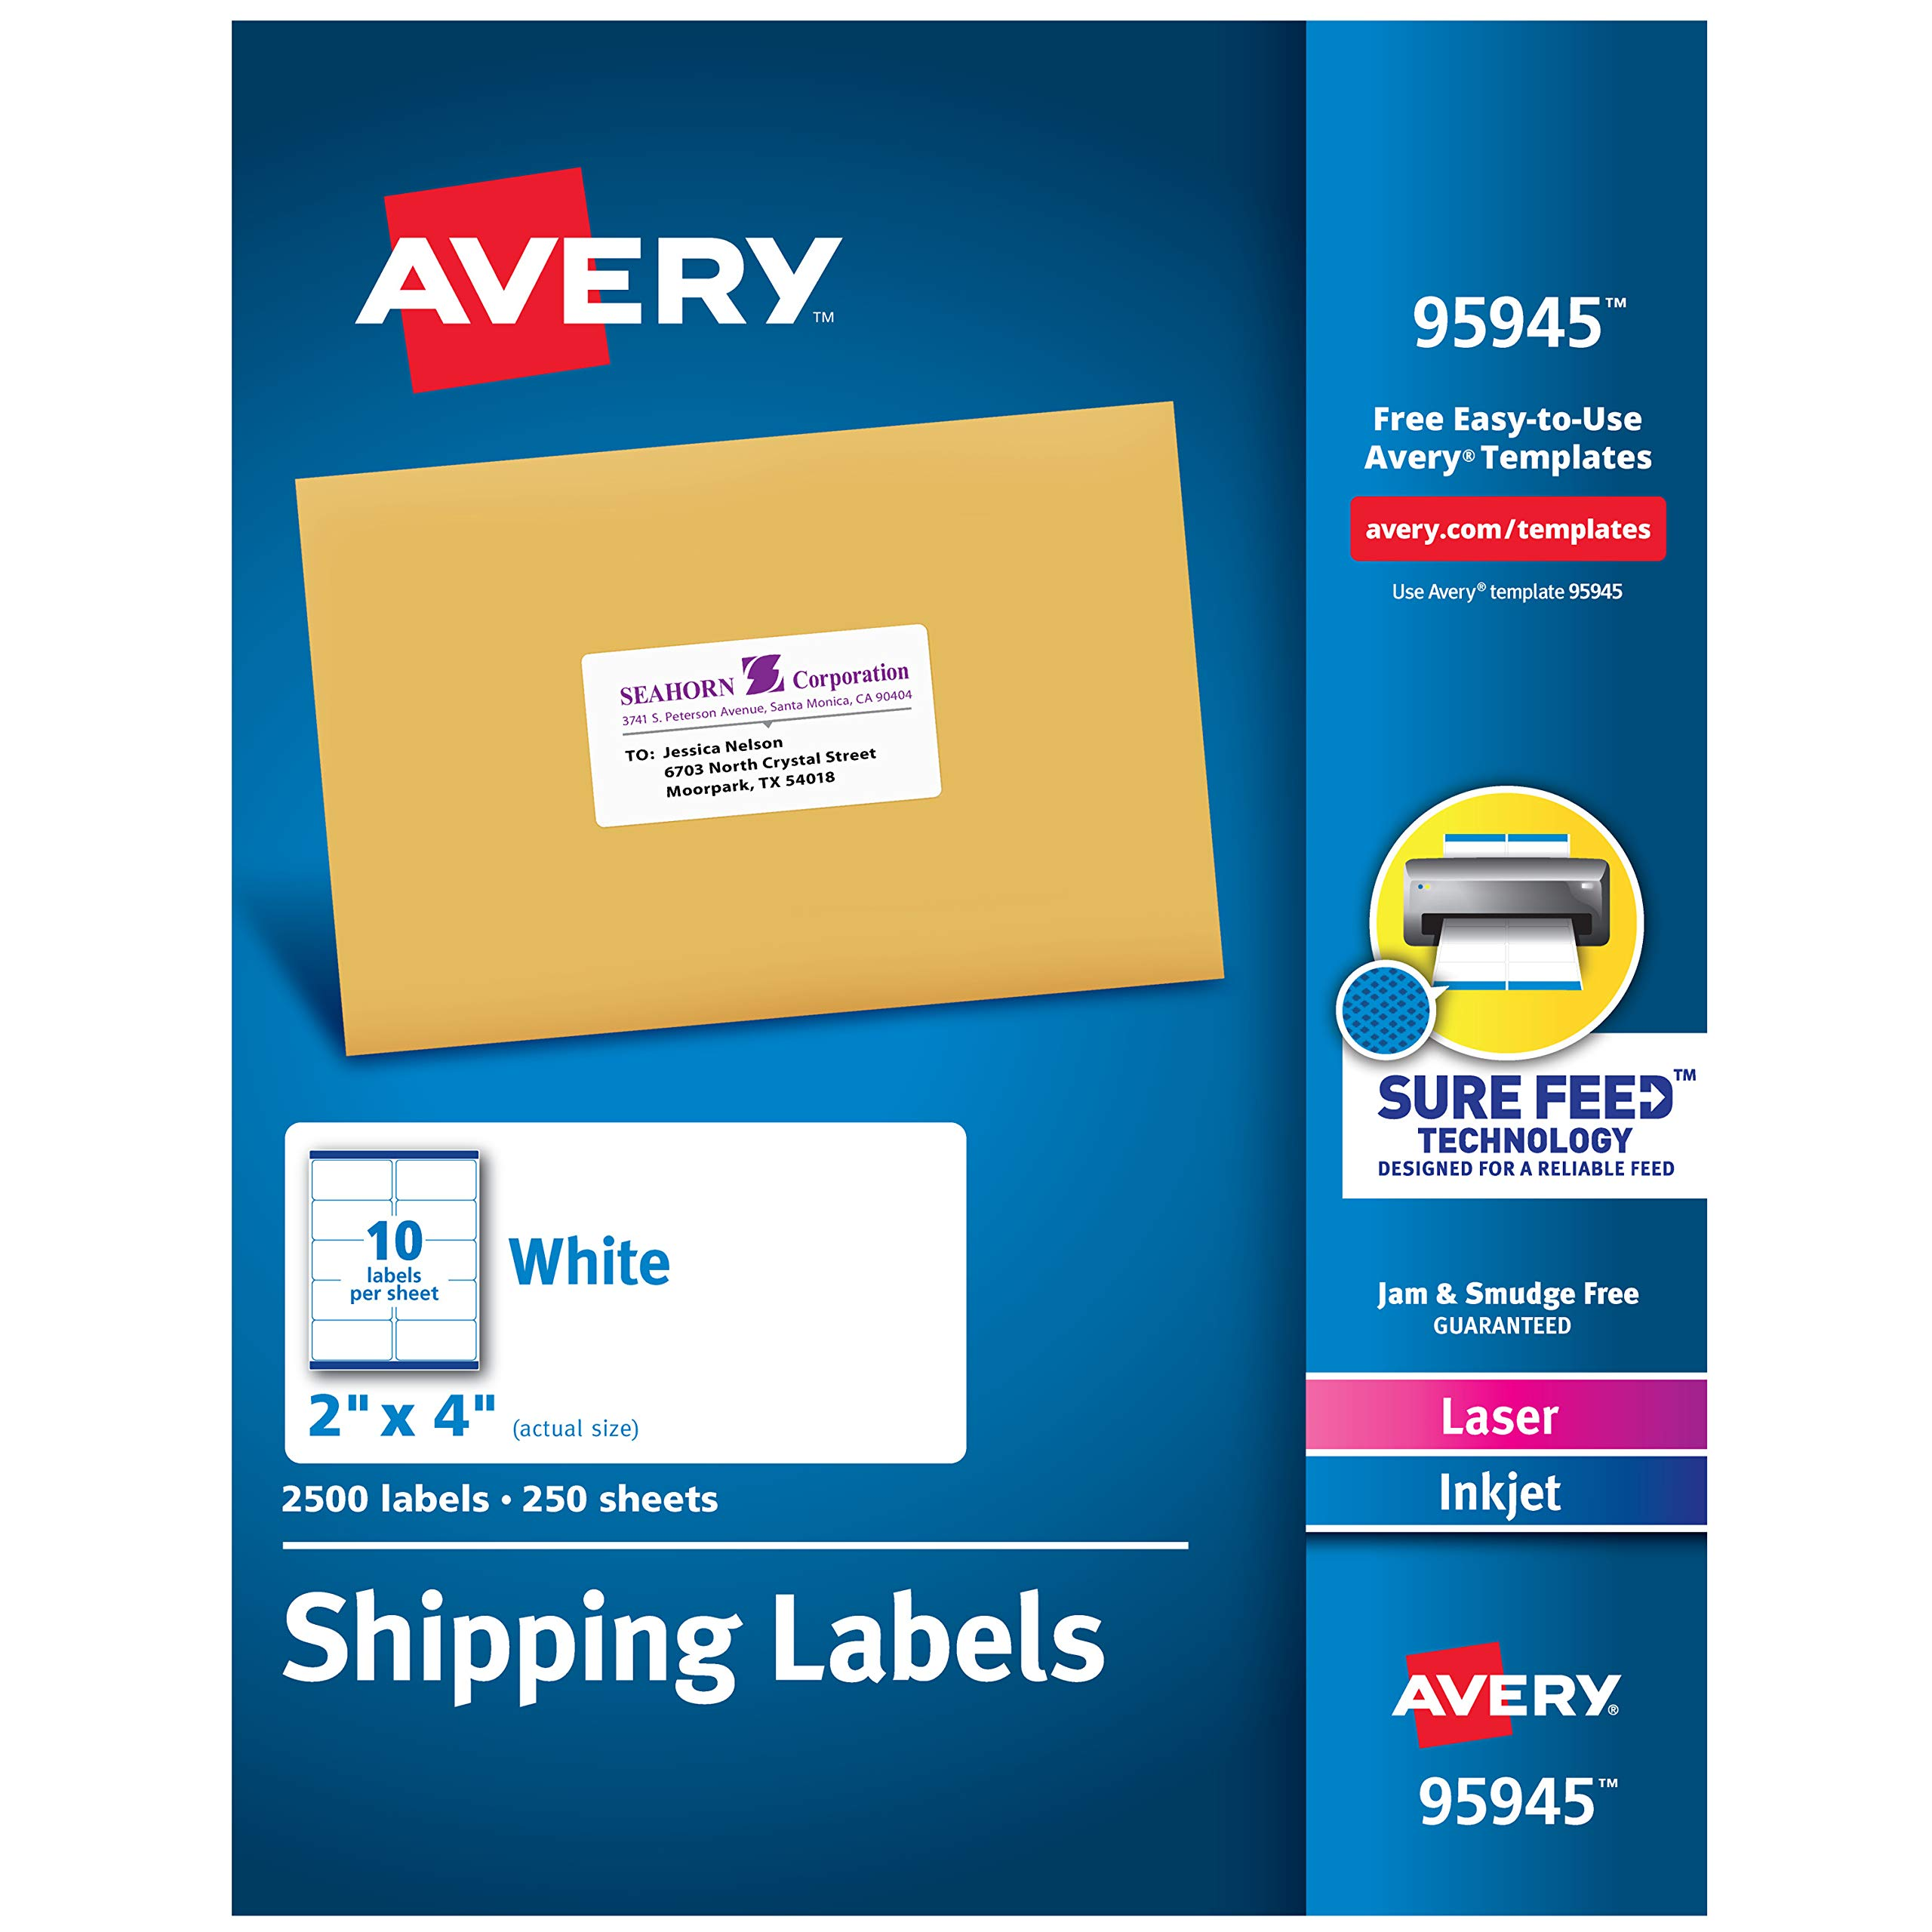 Avery Shipping Address Labels, Laser & Inkjet Printers, 2,500 Labels, 2x4 Labels, Permanent Adhesive (95945), White by AVERY